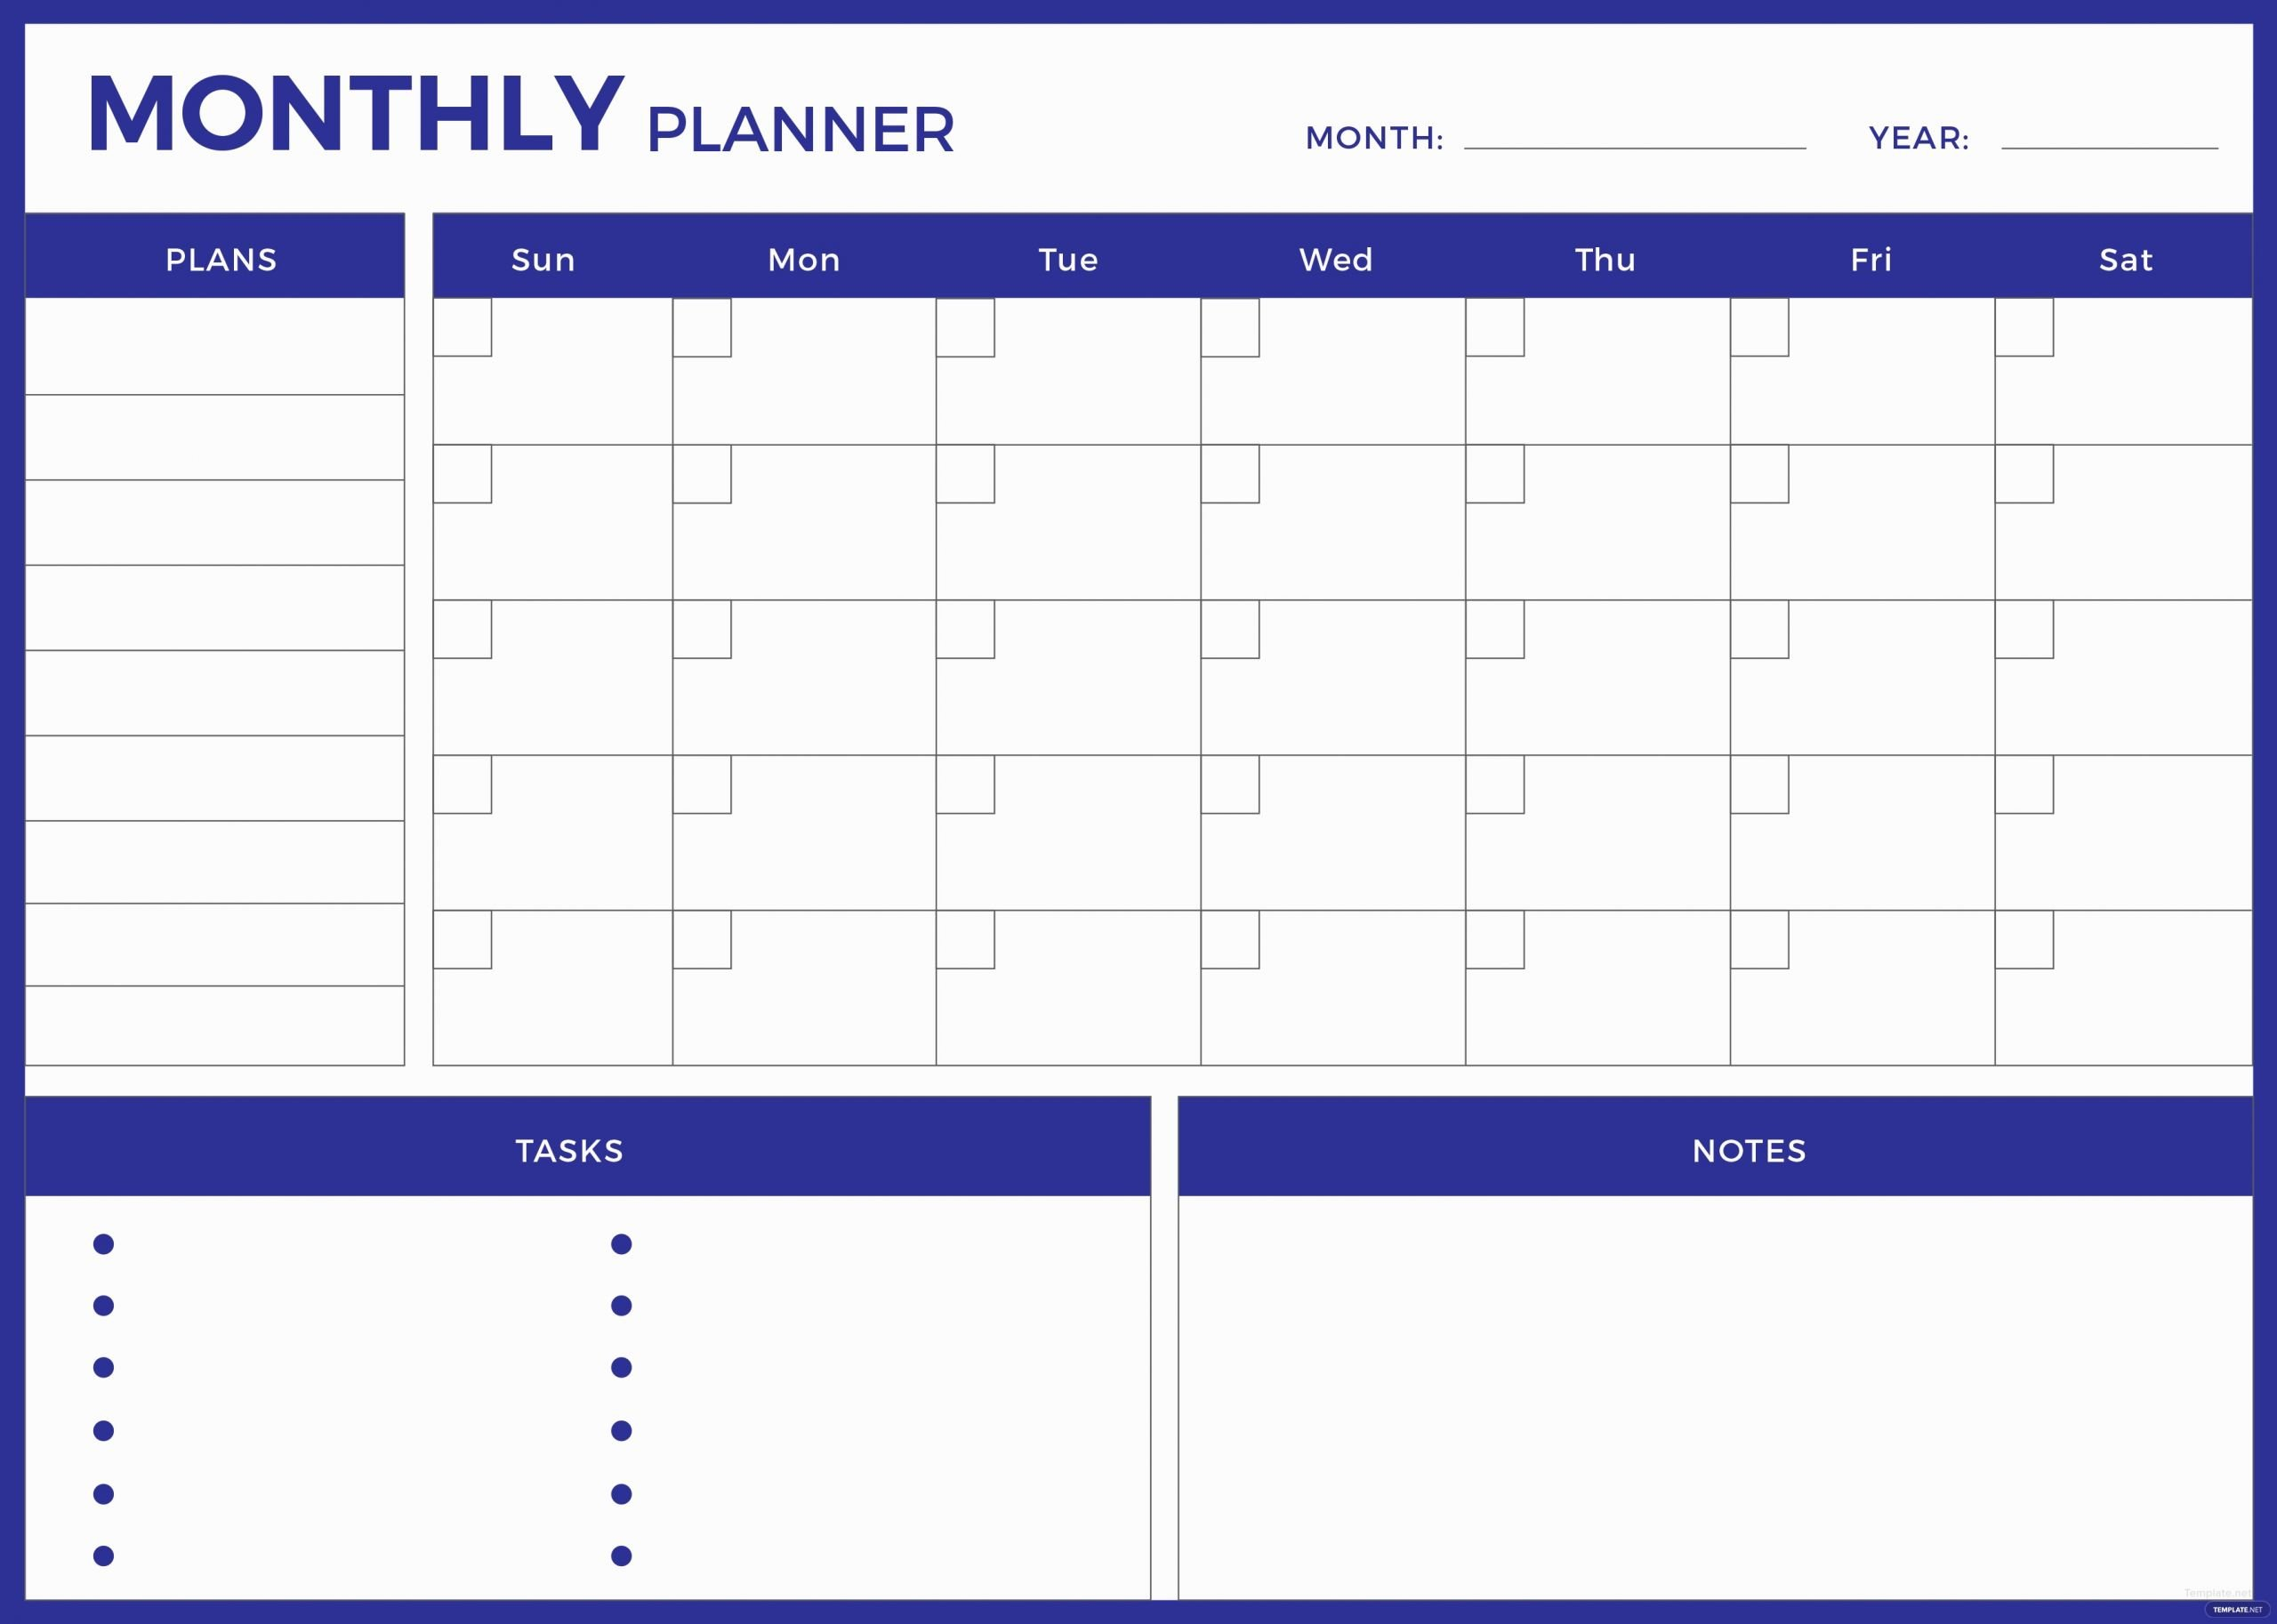 Weekly Monthly Planner Template Lovely Free Monthly Planner Template In Adobe Shop Adobe